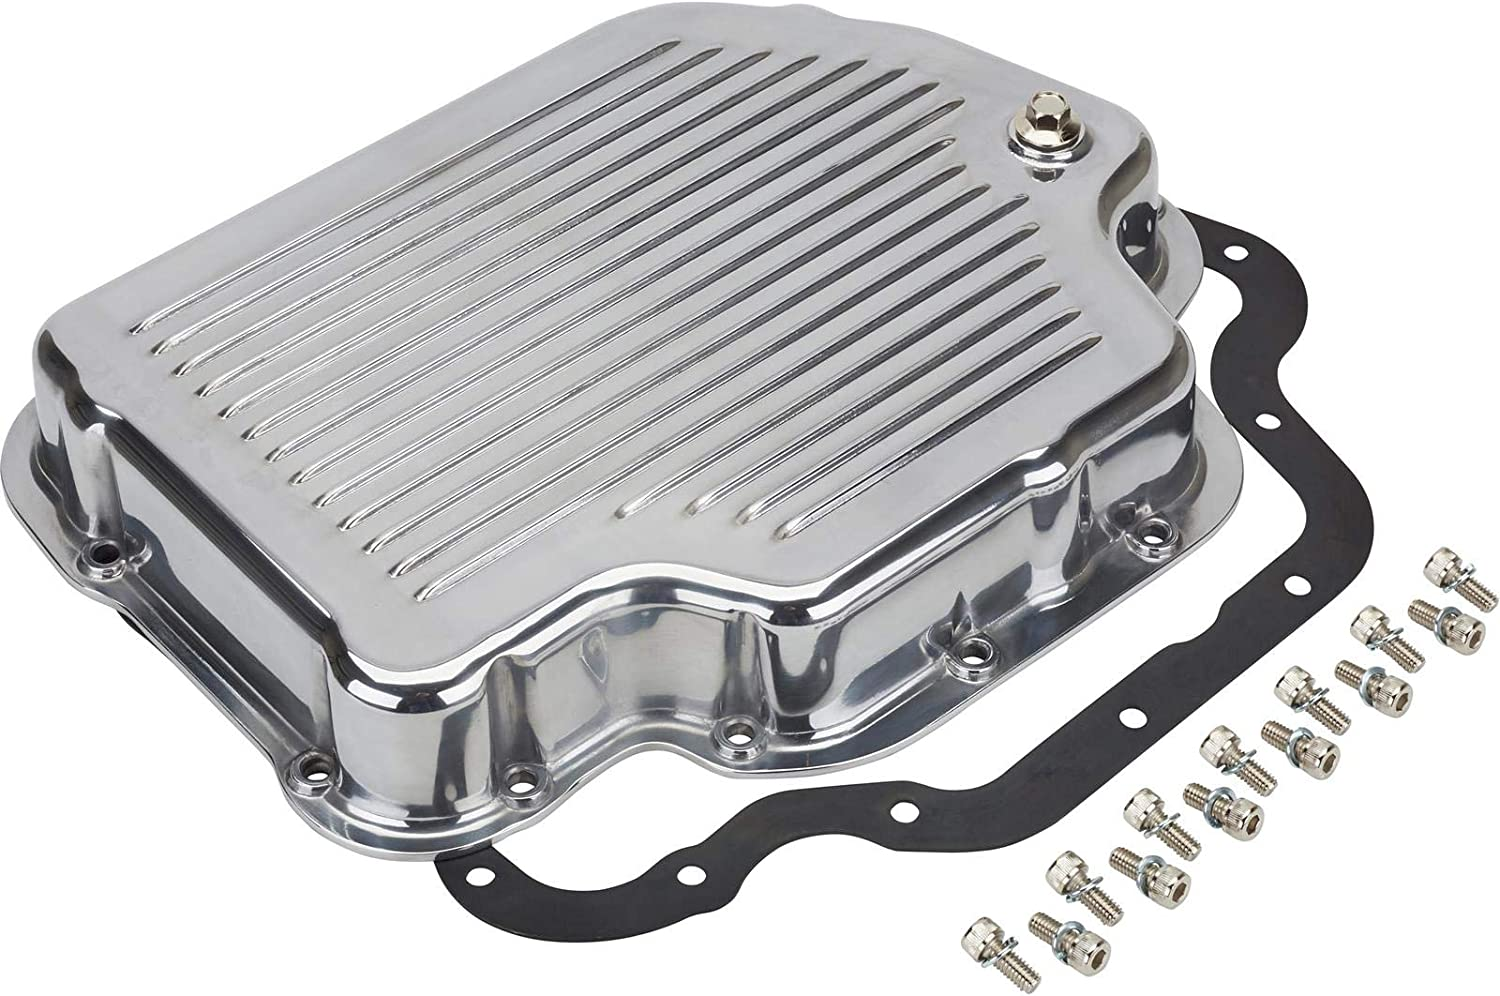 Fits Chevy GM Turbo 400 TH400 Aluminum Transmission Pan Kit Deep Finned Polished